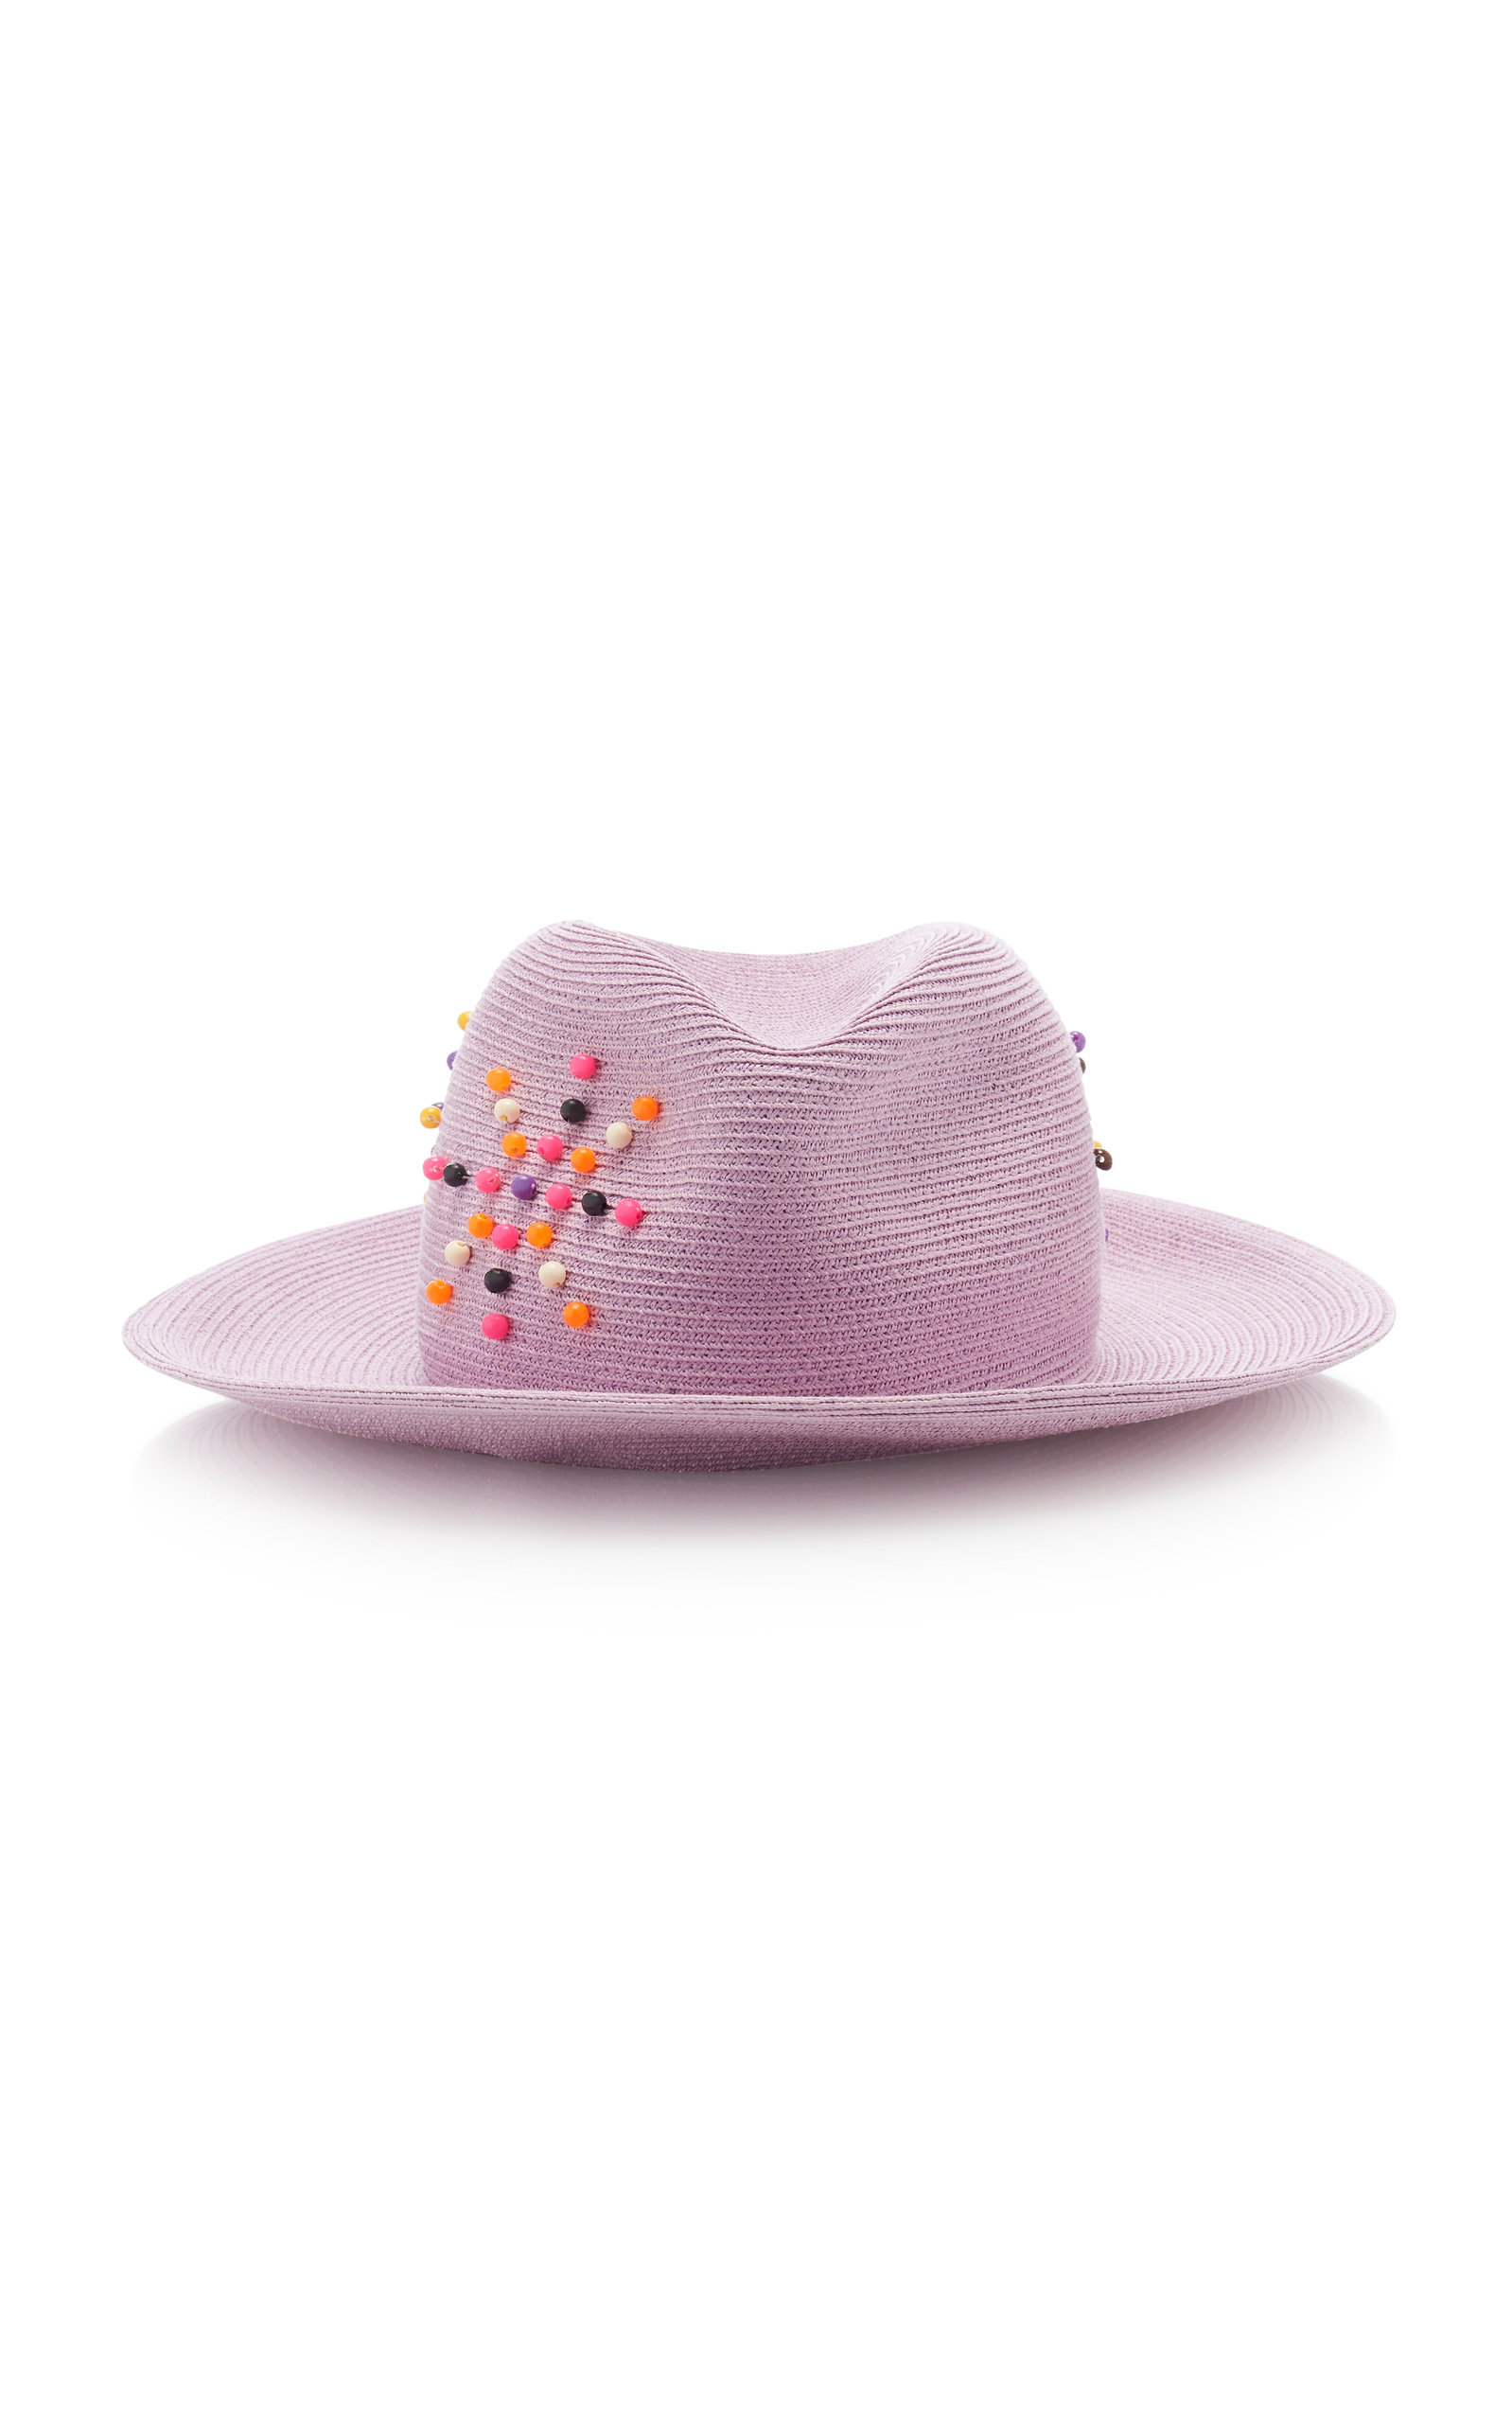 ALBERTUS SWANEPOEL M'O Exclusive Magriet Embellished Straw Hat in Purple